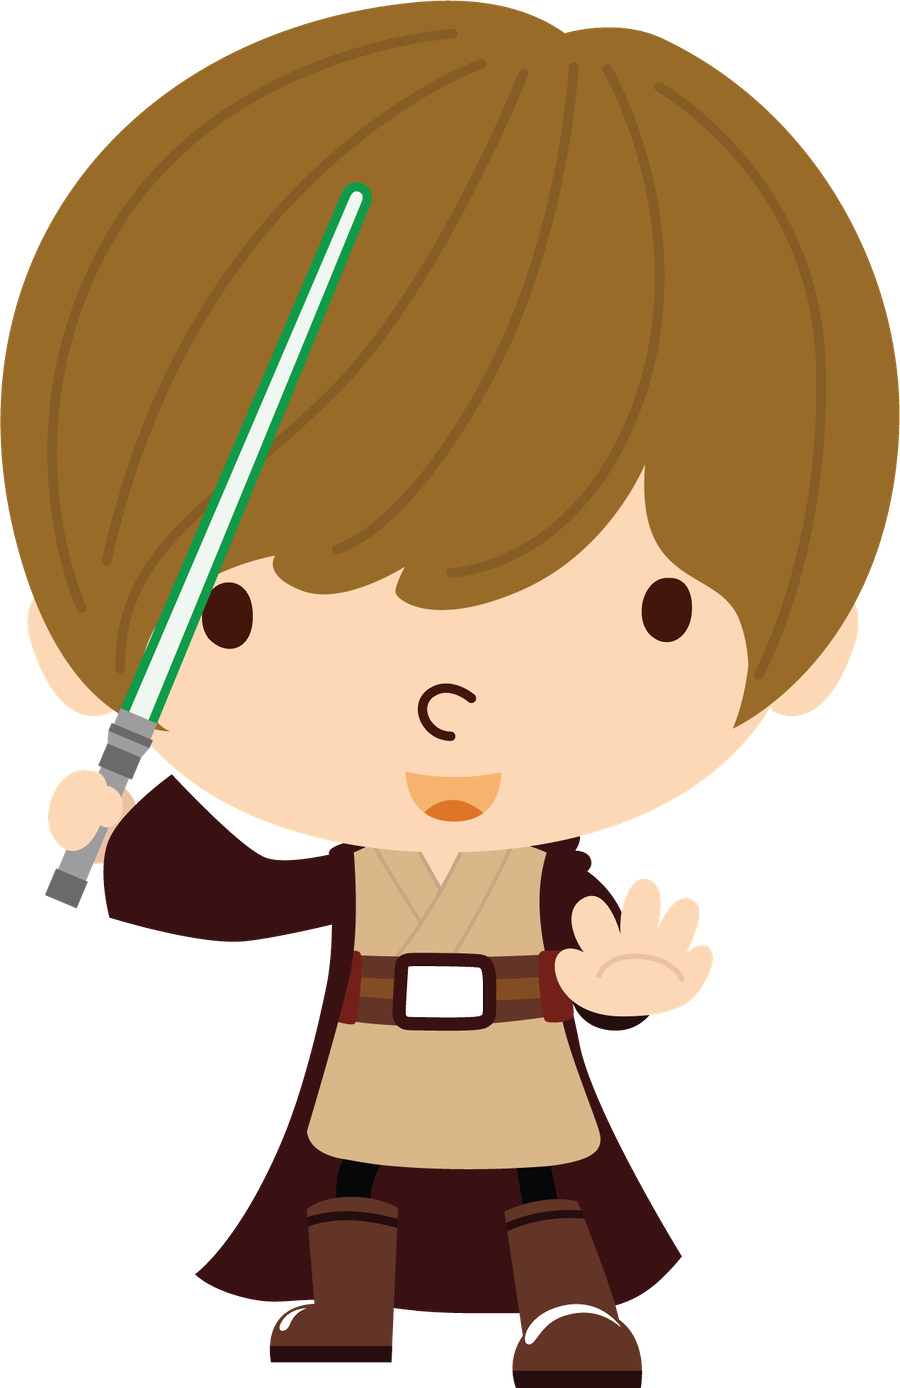 Star wars clipart luke skywalker clip art freeuse Star Wars - Minus | already felt- characters 2 | Pinterest | Star ... clip art freeuse